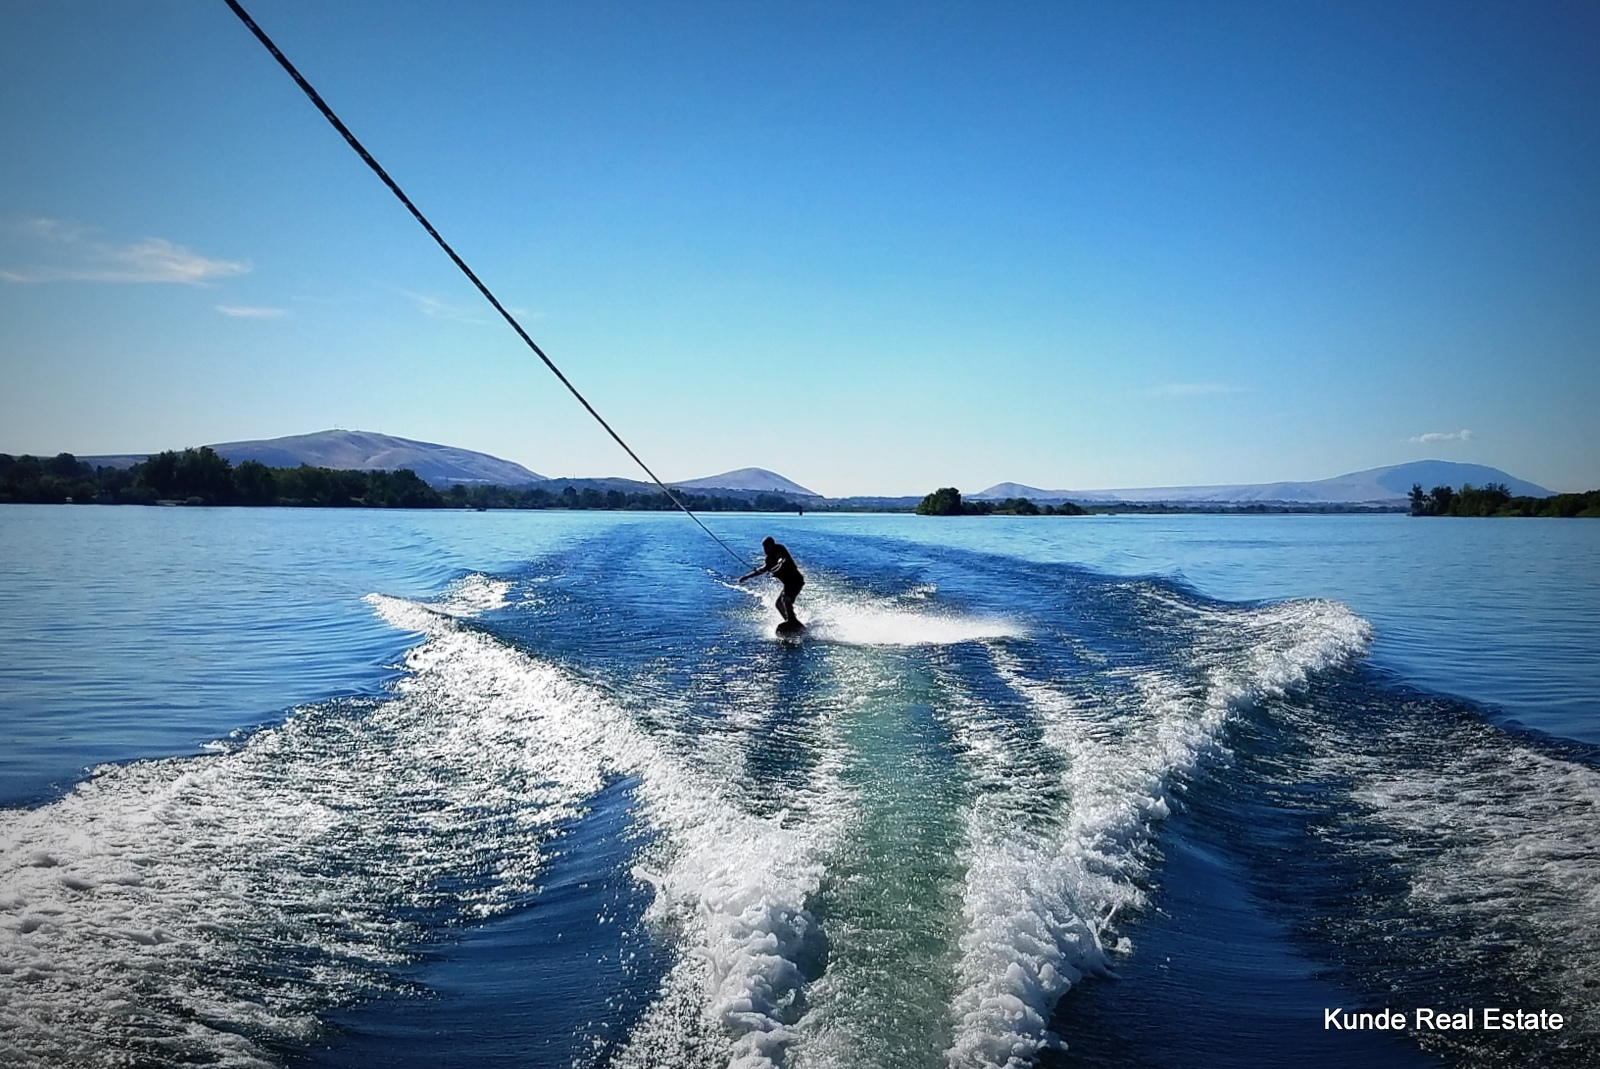 Wakeboarding on the Columbia River